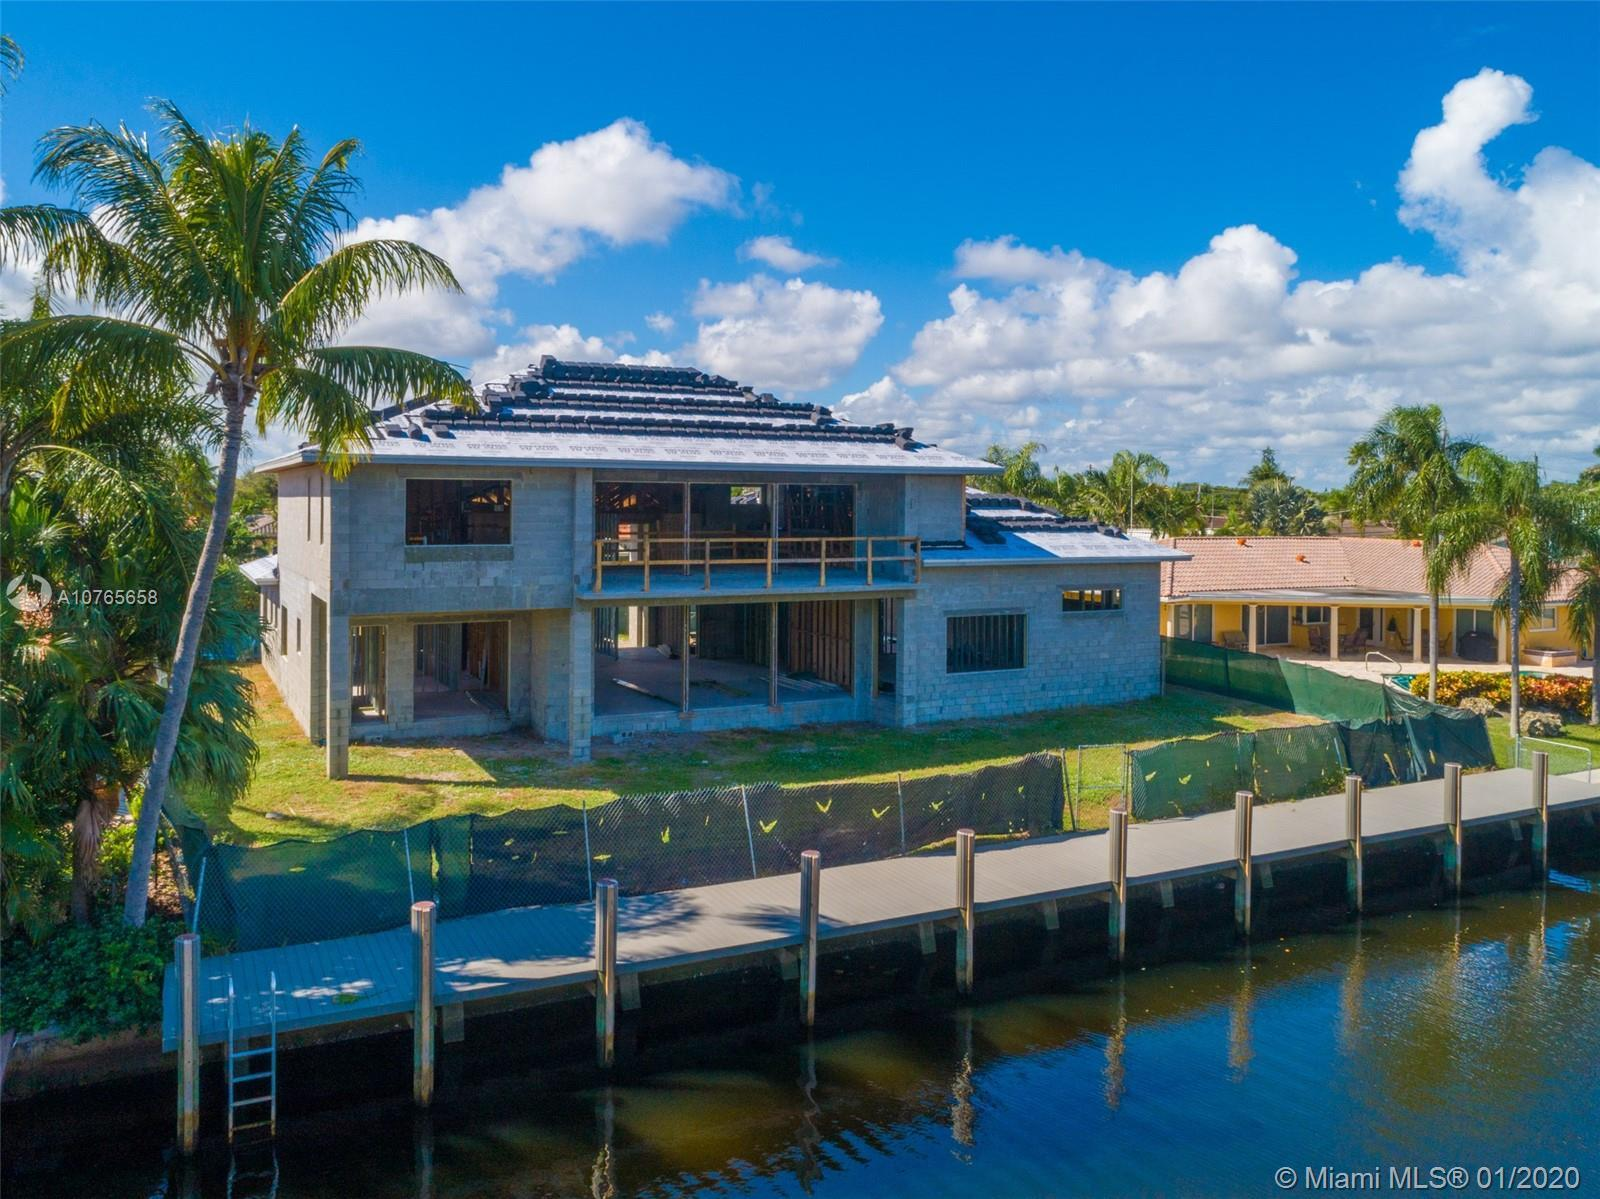 This BRAND NEW transitional modern deepwater estate sits on an oversized 12,000sf lot with 100ft of